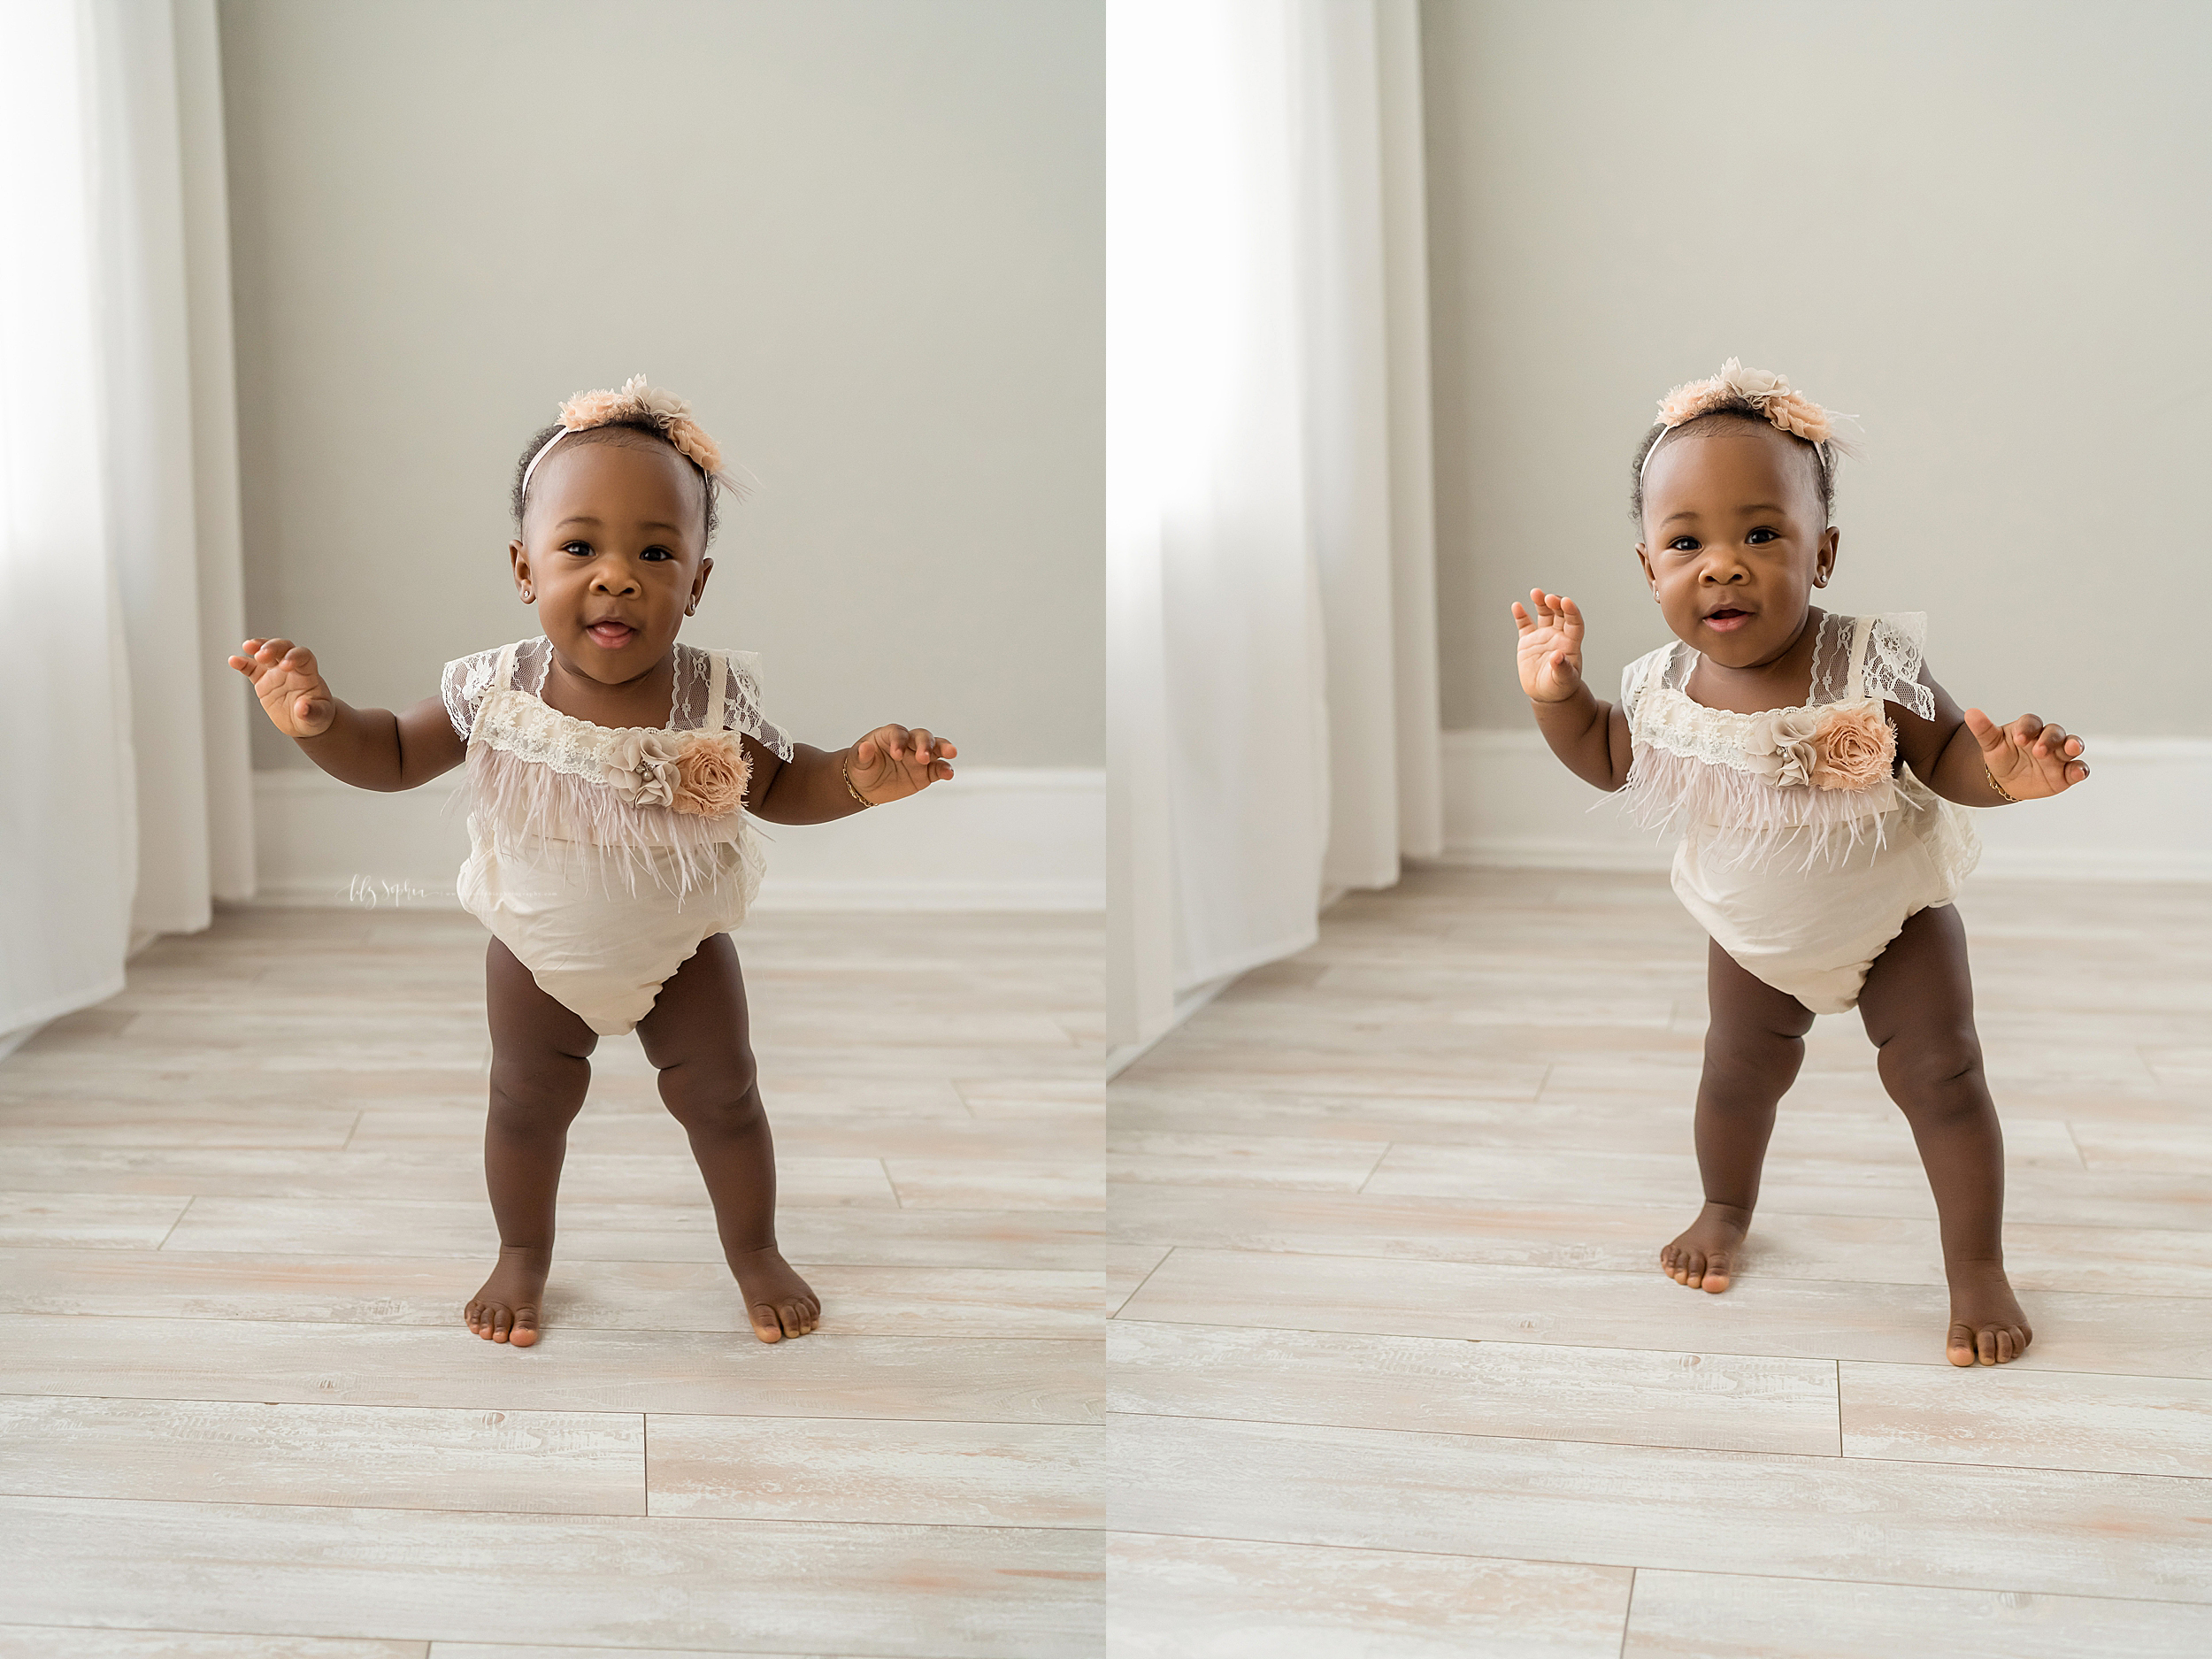 atlanta-decatur-candler-park-sandy-springs-buckhead-virginia-highlands-west-end-decatur-lily-sophia-photography-studio-one-year-old-baby-girl-first-birthday-cake-smash-toddler-big-brother-family-parents-session_1871.jpg